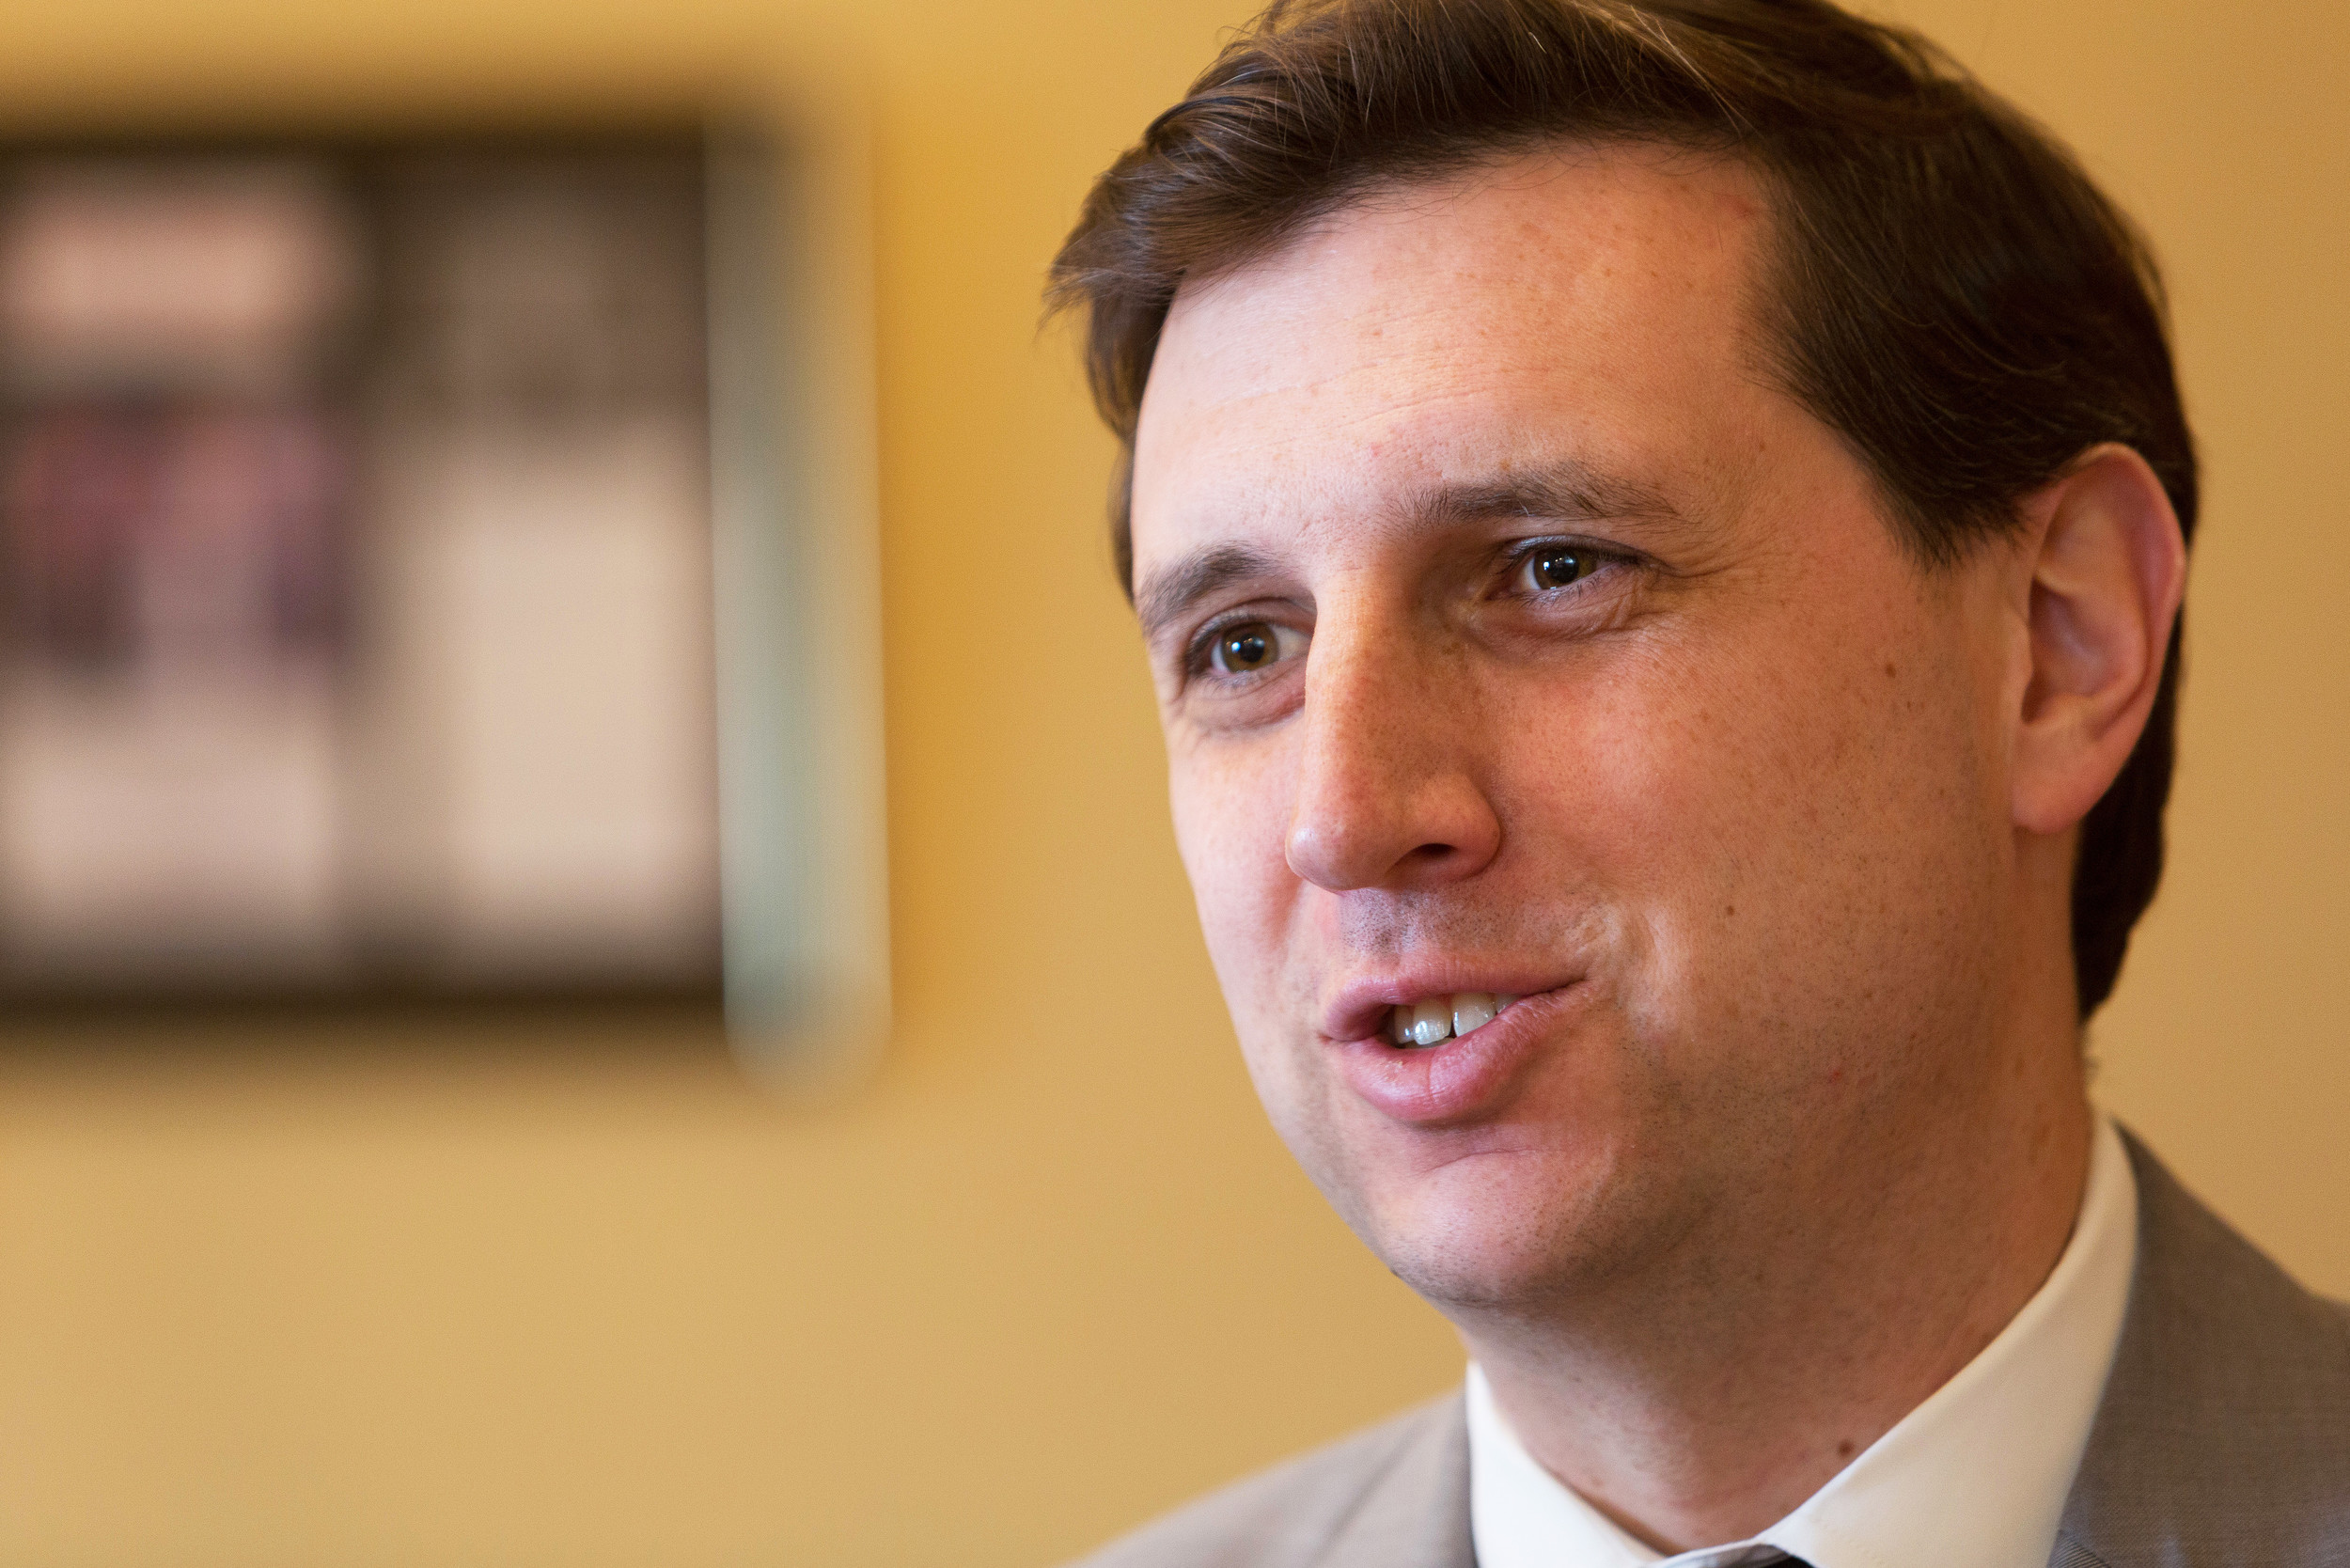 R.I. Treasurer Seth Magaziner has hit the ground running with a proposal to expand the Clean Water Finance Agency into an Infrastructure Bank, built upon innovative financing plans to leverage $2 million in new state funding into $30 million in new investments by private capital and federal funds, focusing on energy efficiency, renewable energy and the environment.